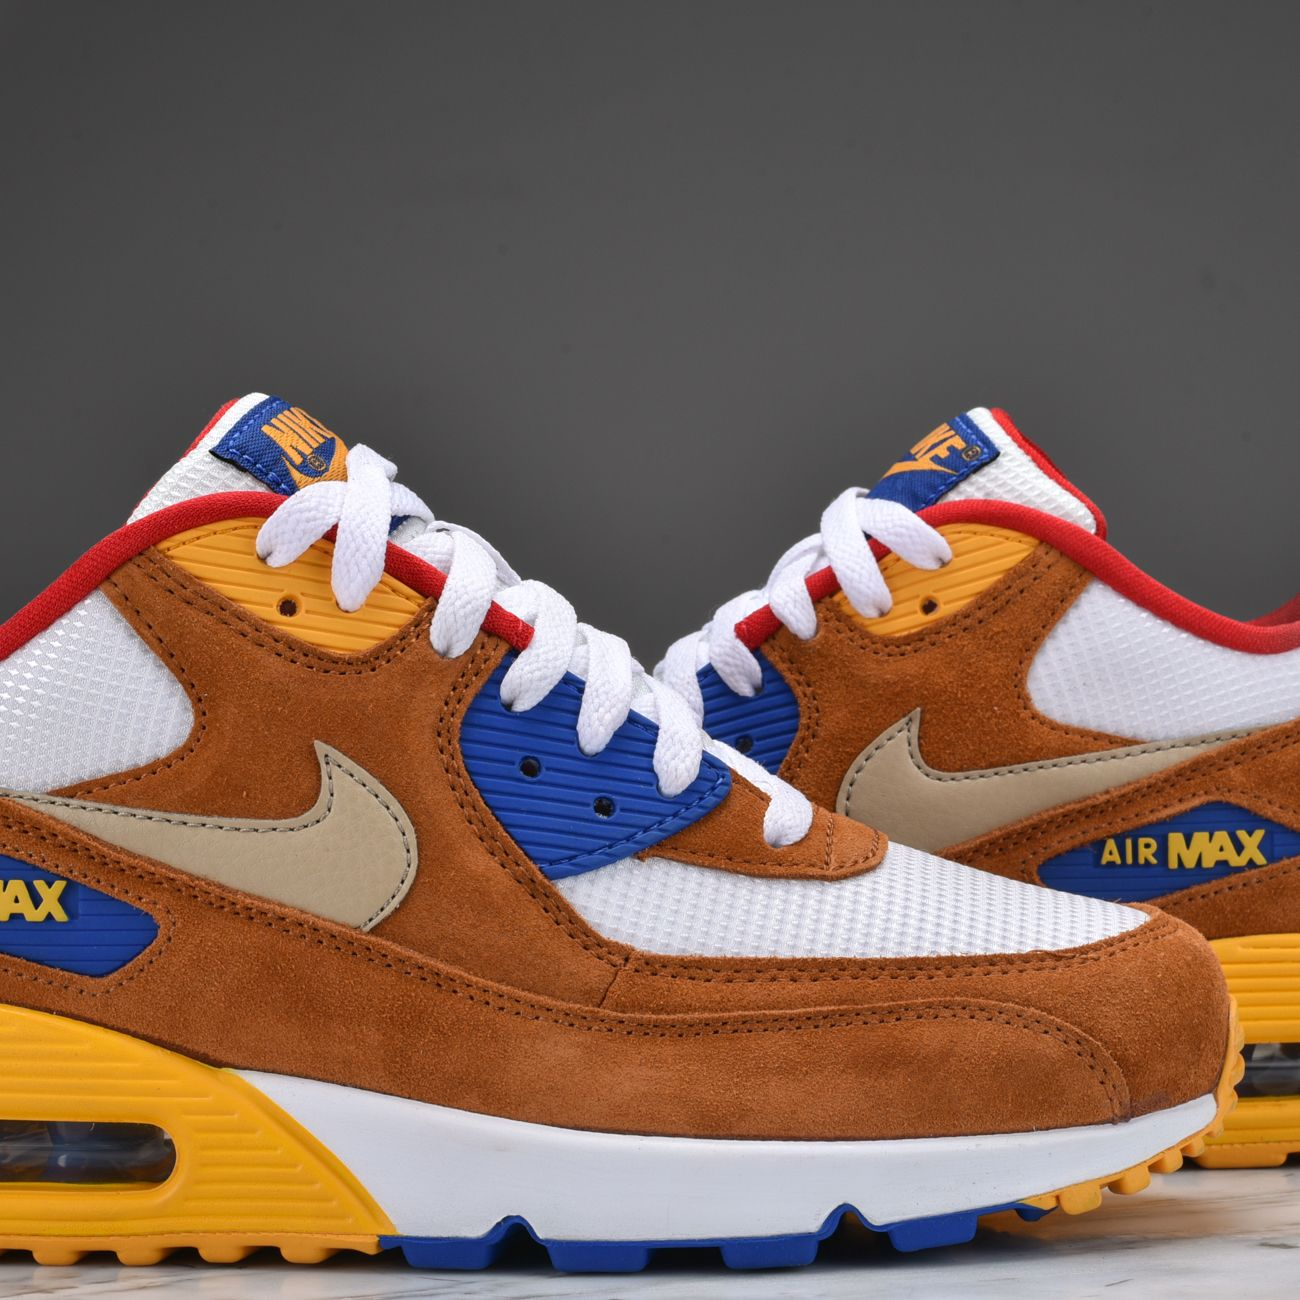 new style 76d2a 50b93 Check out these clean images of the Nike Air Max 90 Premium Curry.